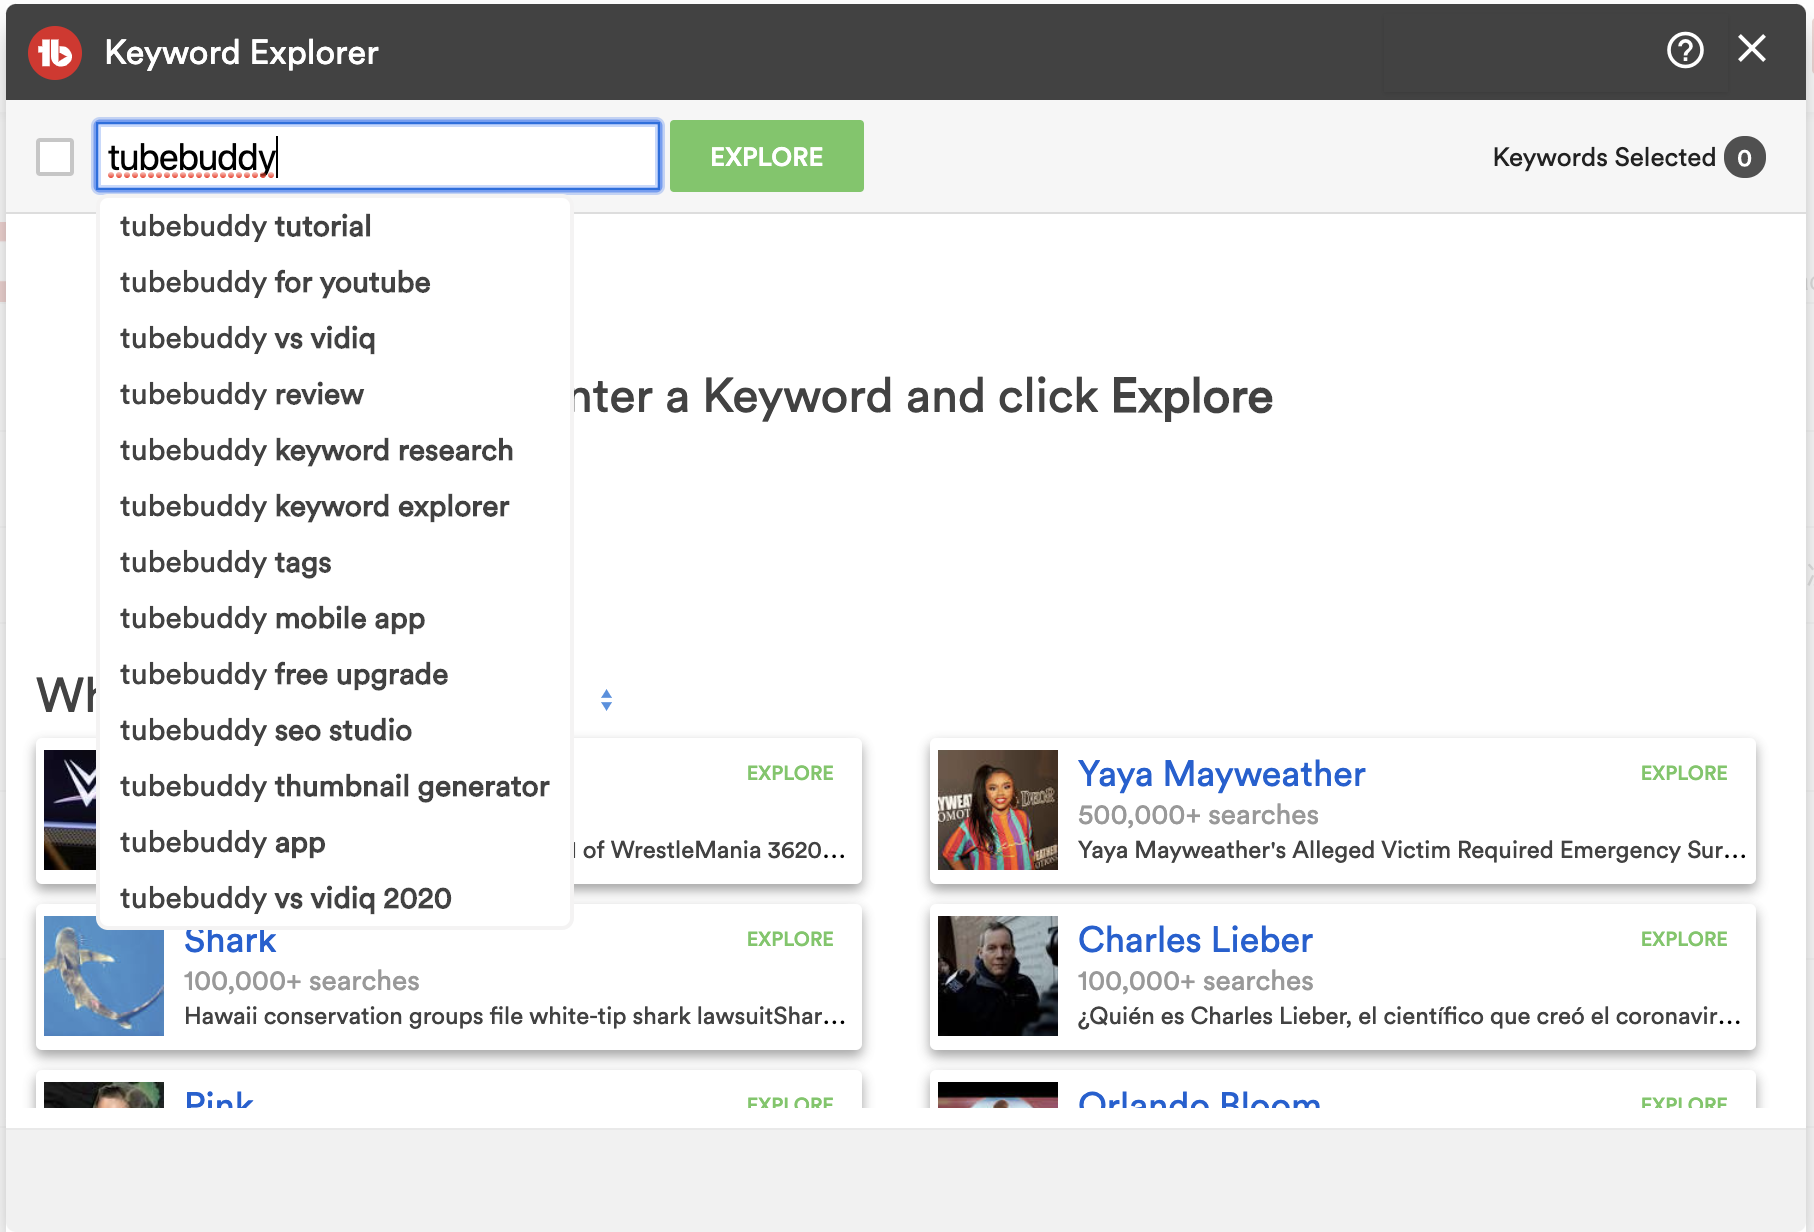 tubebuddy Keywords Explorer